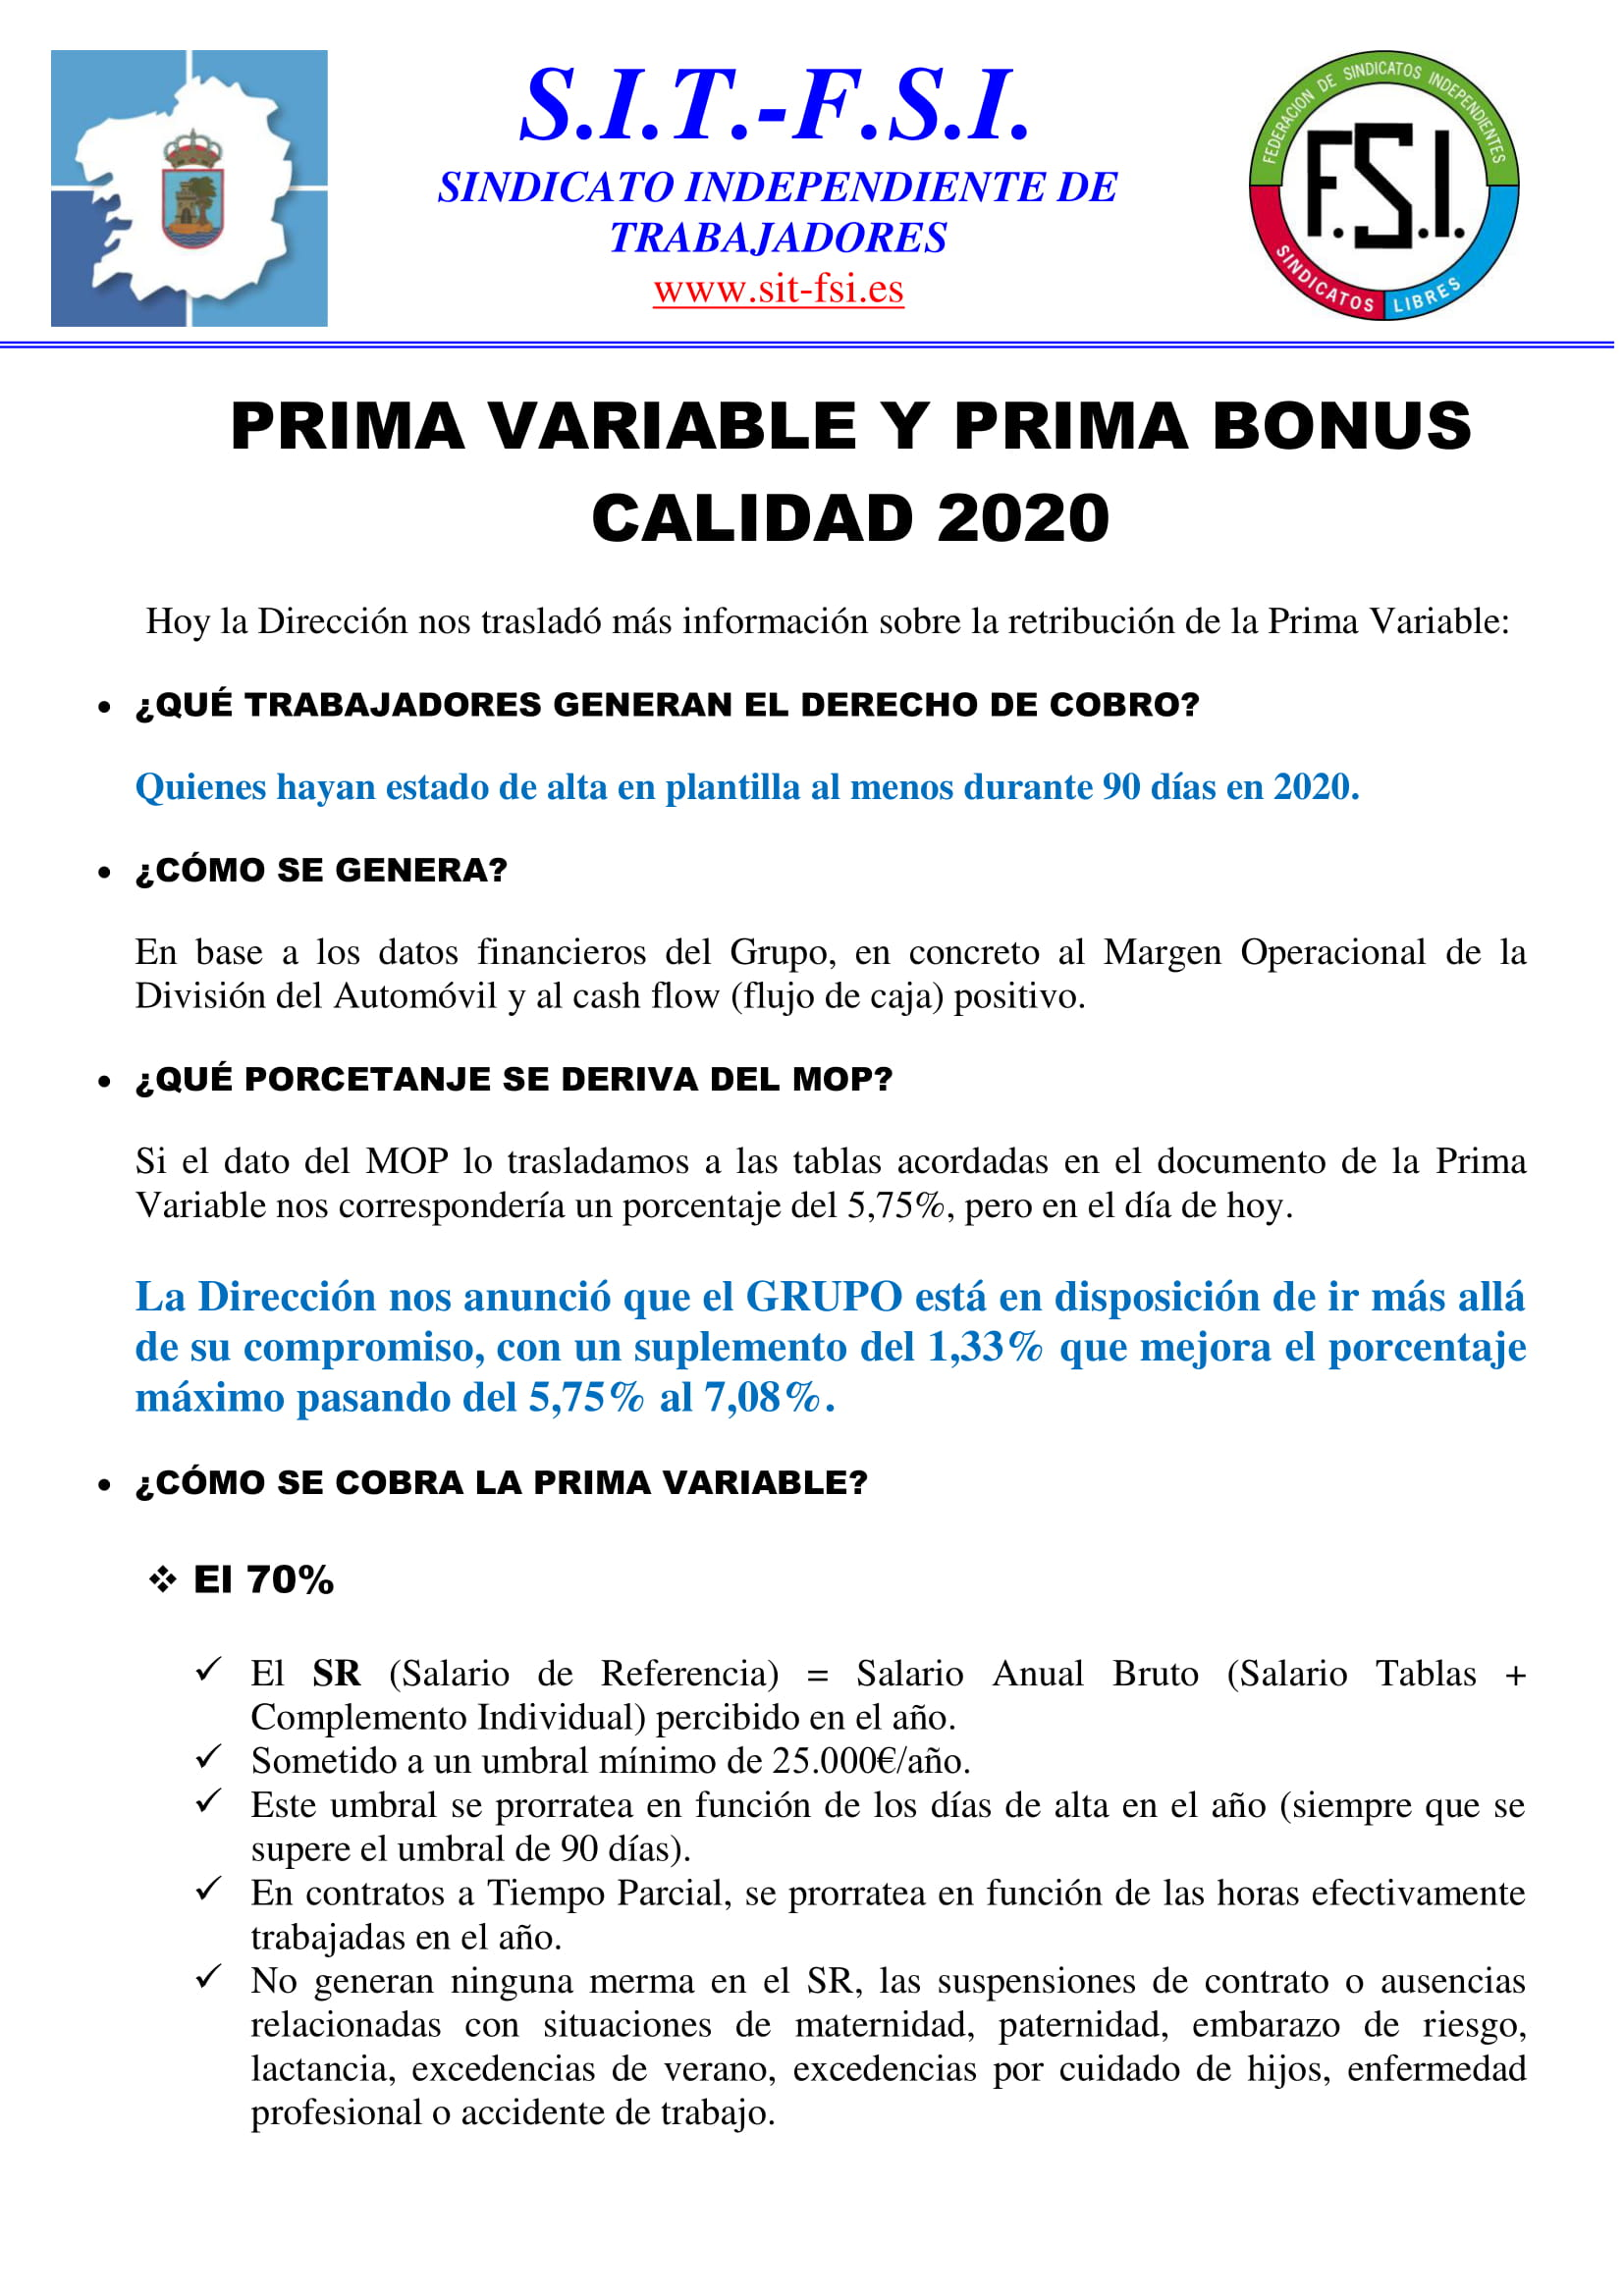 PRIMA VARIABLE Y BONUS CALIDAD 2020